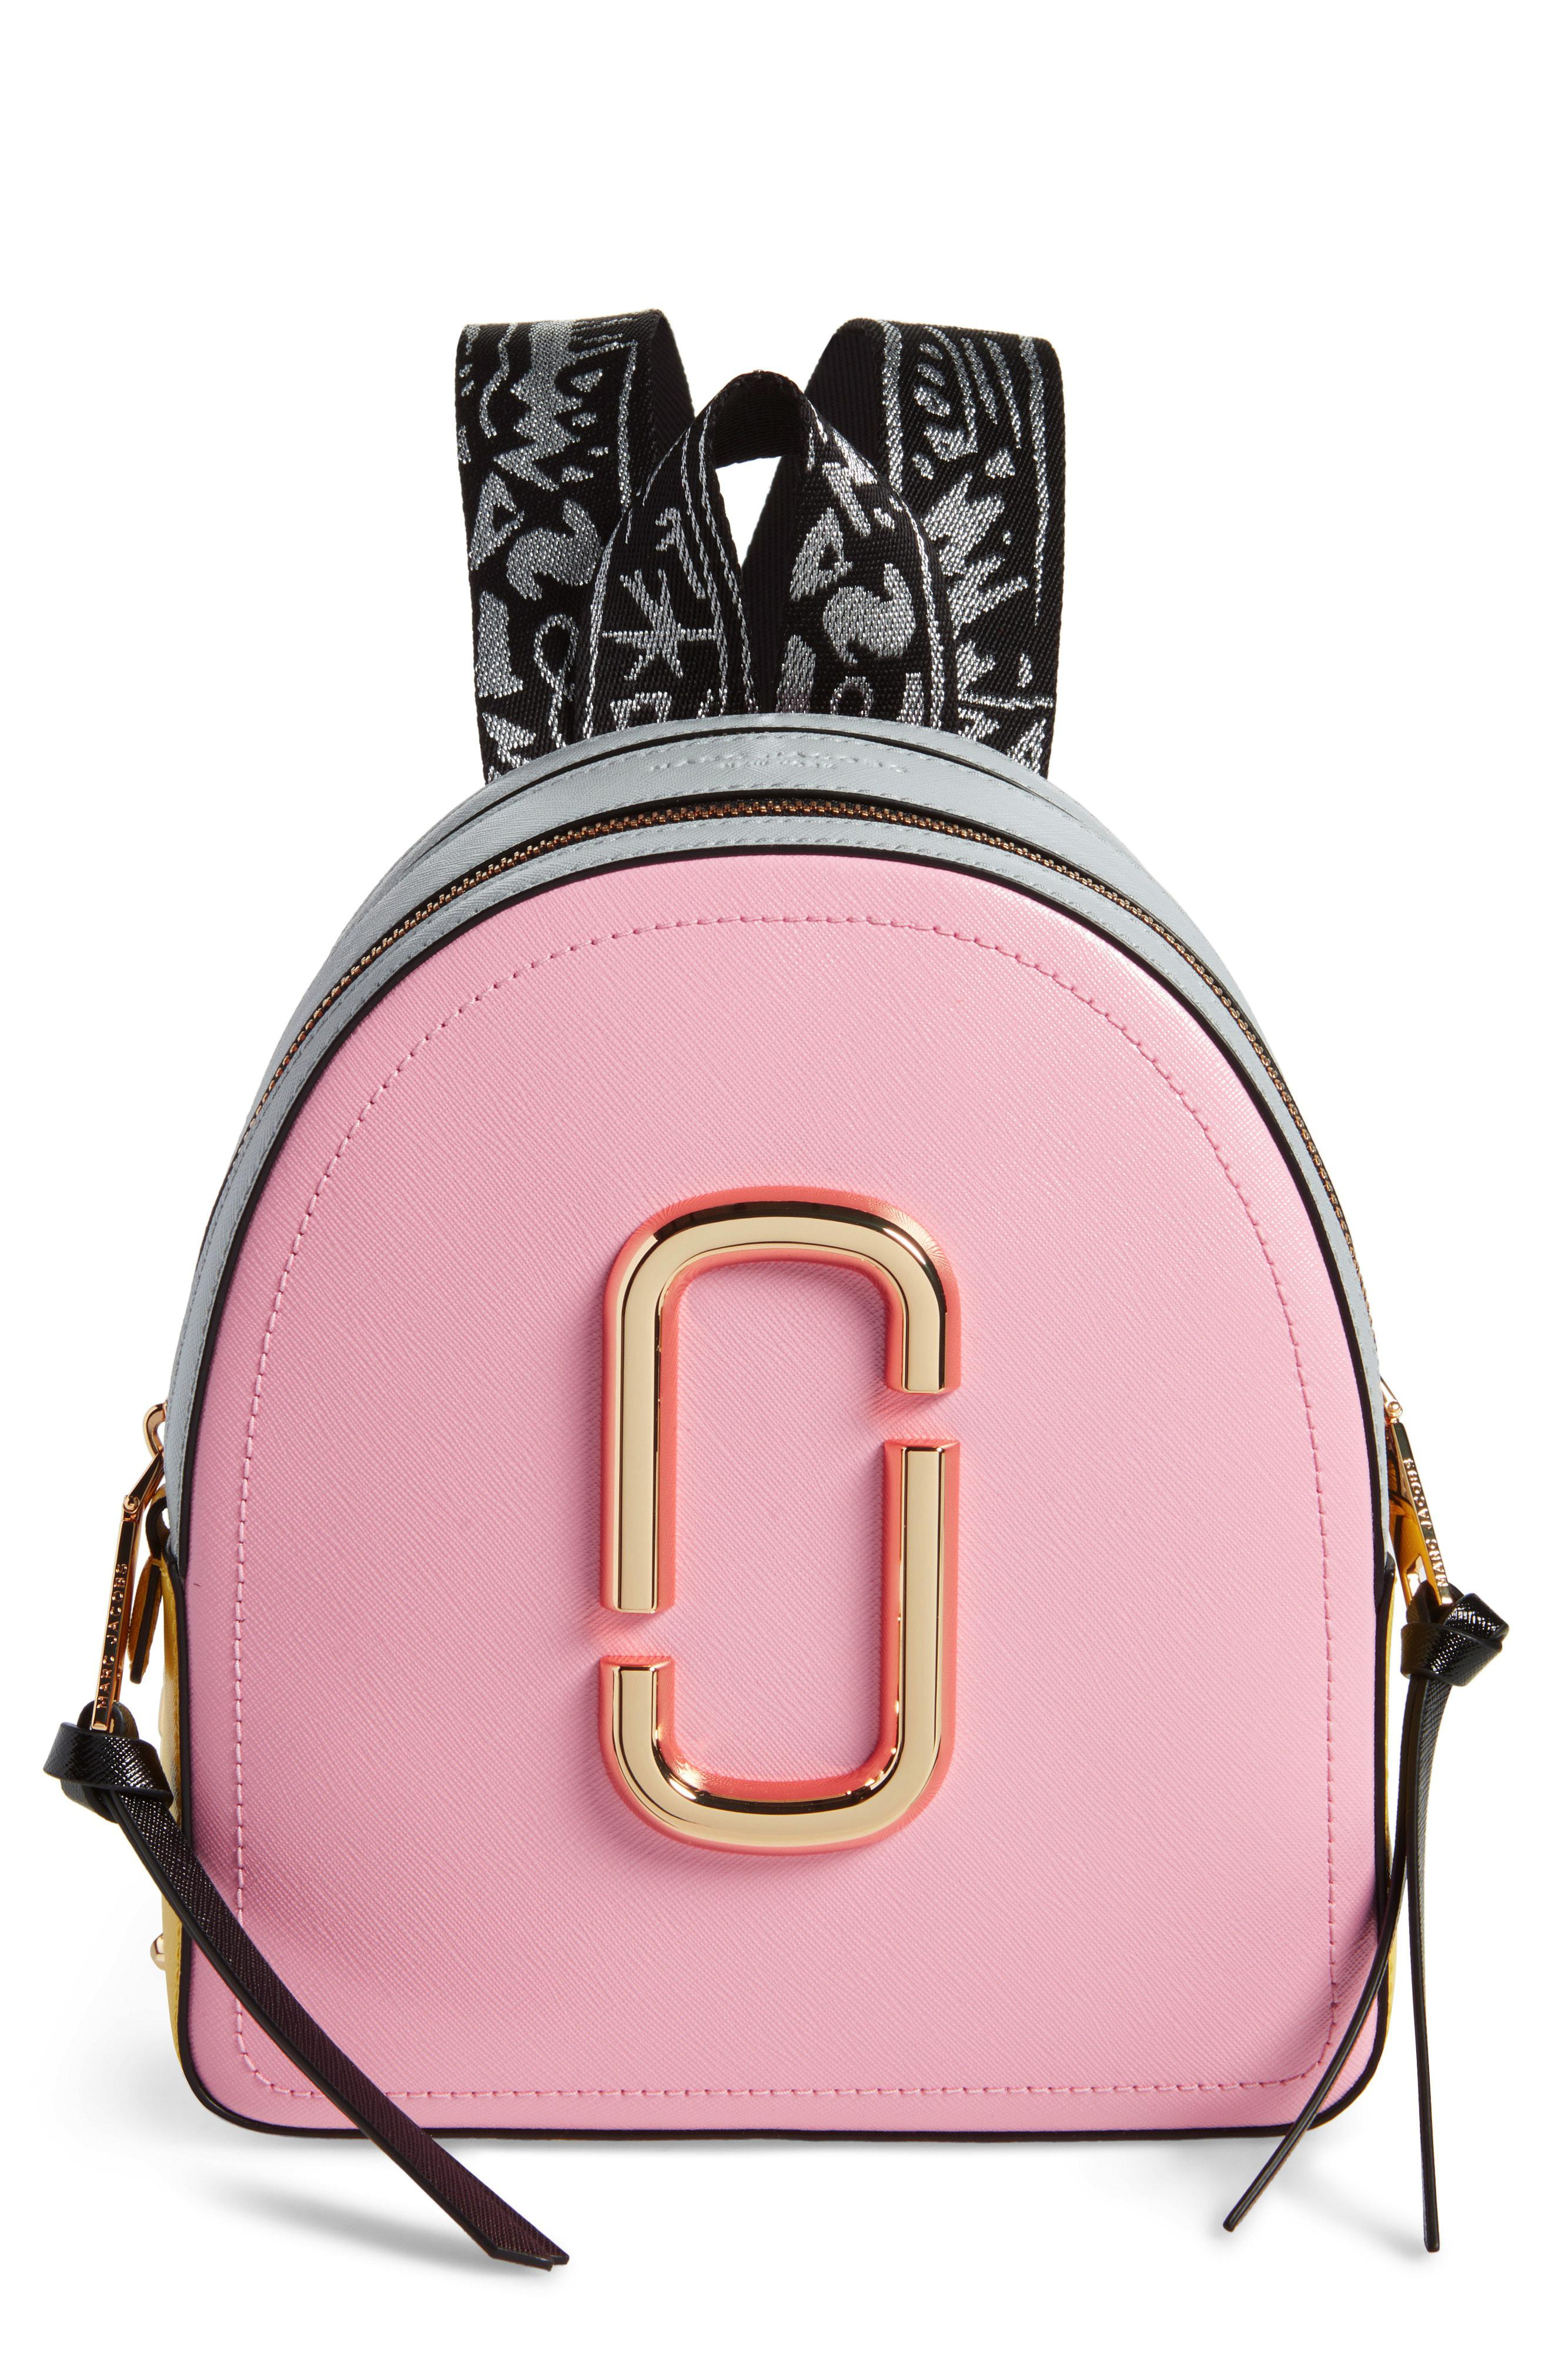 90435aaae55a5 marc-jacobs-Baby-Pink-Multi-Pack-Shot-Leather-Backpack.jpeg